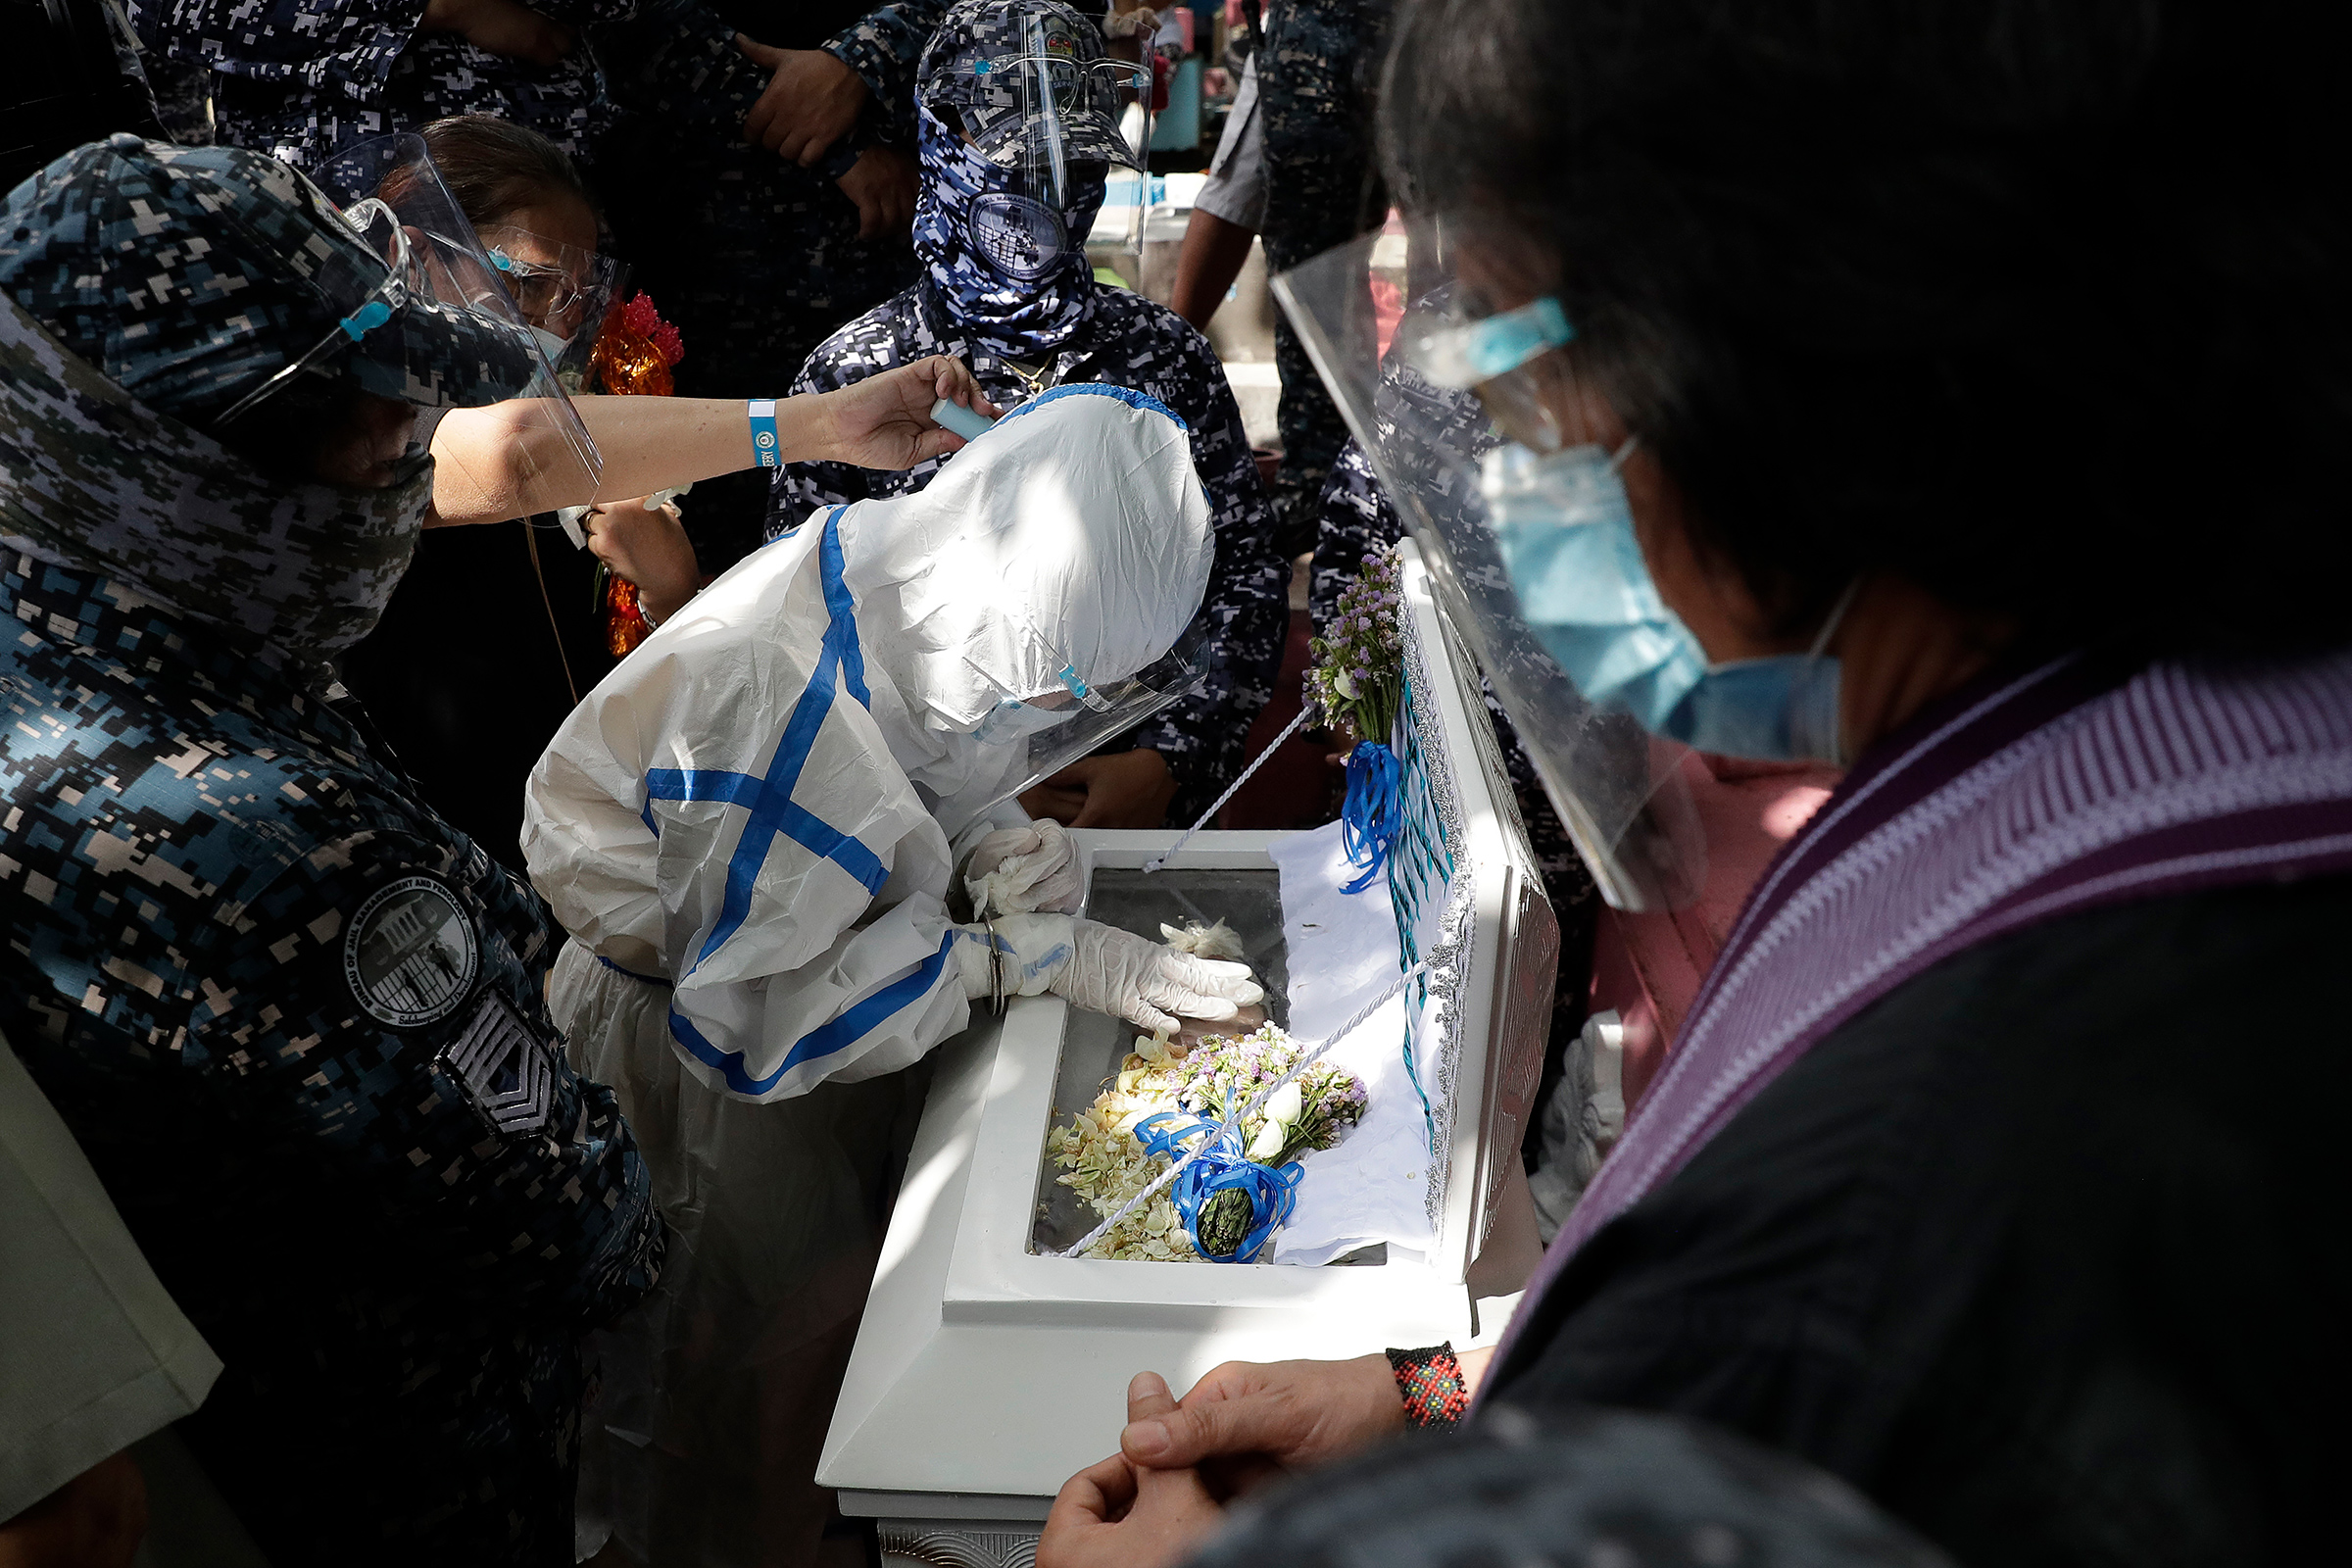 Detained left-wing activist Reina Mae Nasino, in handcuffs and wearing a protective suit to prevent the spread of coronavirus, touches the coffin of her three-month-old daughter, River, during funeral rites guarded by armed escorts at Manila North Cemetery on Oct. 16. The 23-year-old was among three activists arrested last year in a Philippine left-wing group's office, the Associated Press reported, and charged with the illegal possession of explosives and firearms; their lawyers alleged that the weapons were placed by police, which denied the accusation. A court allowed Nasino three hours to attend the burial of her baby, who died of acute gastroenteritis, the AP added, but critics decried her treatment.